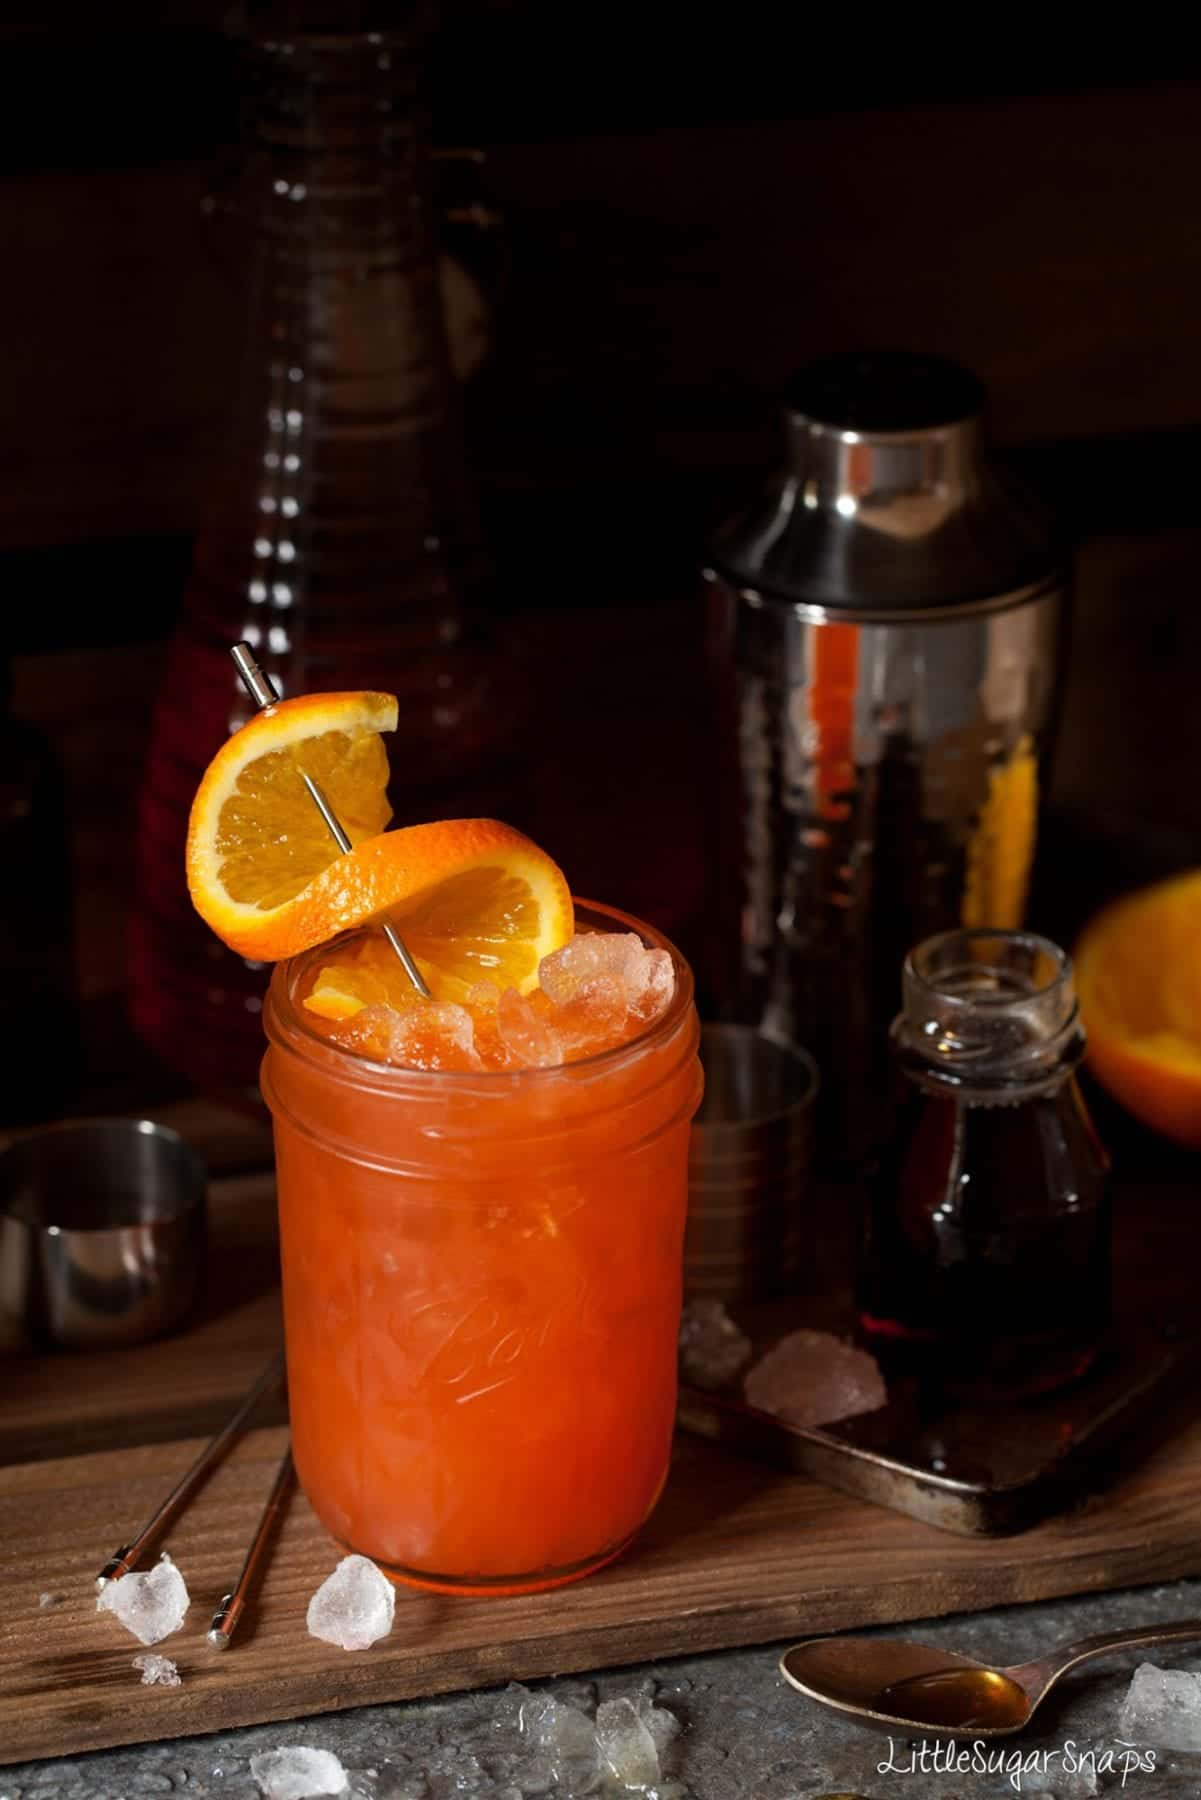 A tequila and Aperol cocktail garnished with a twist of orange.